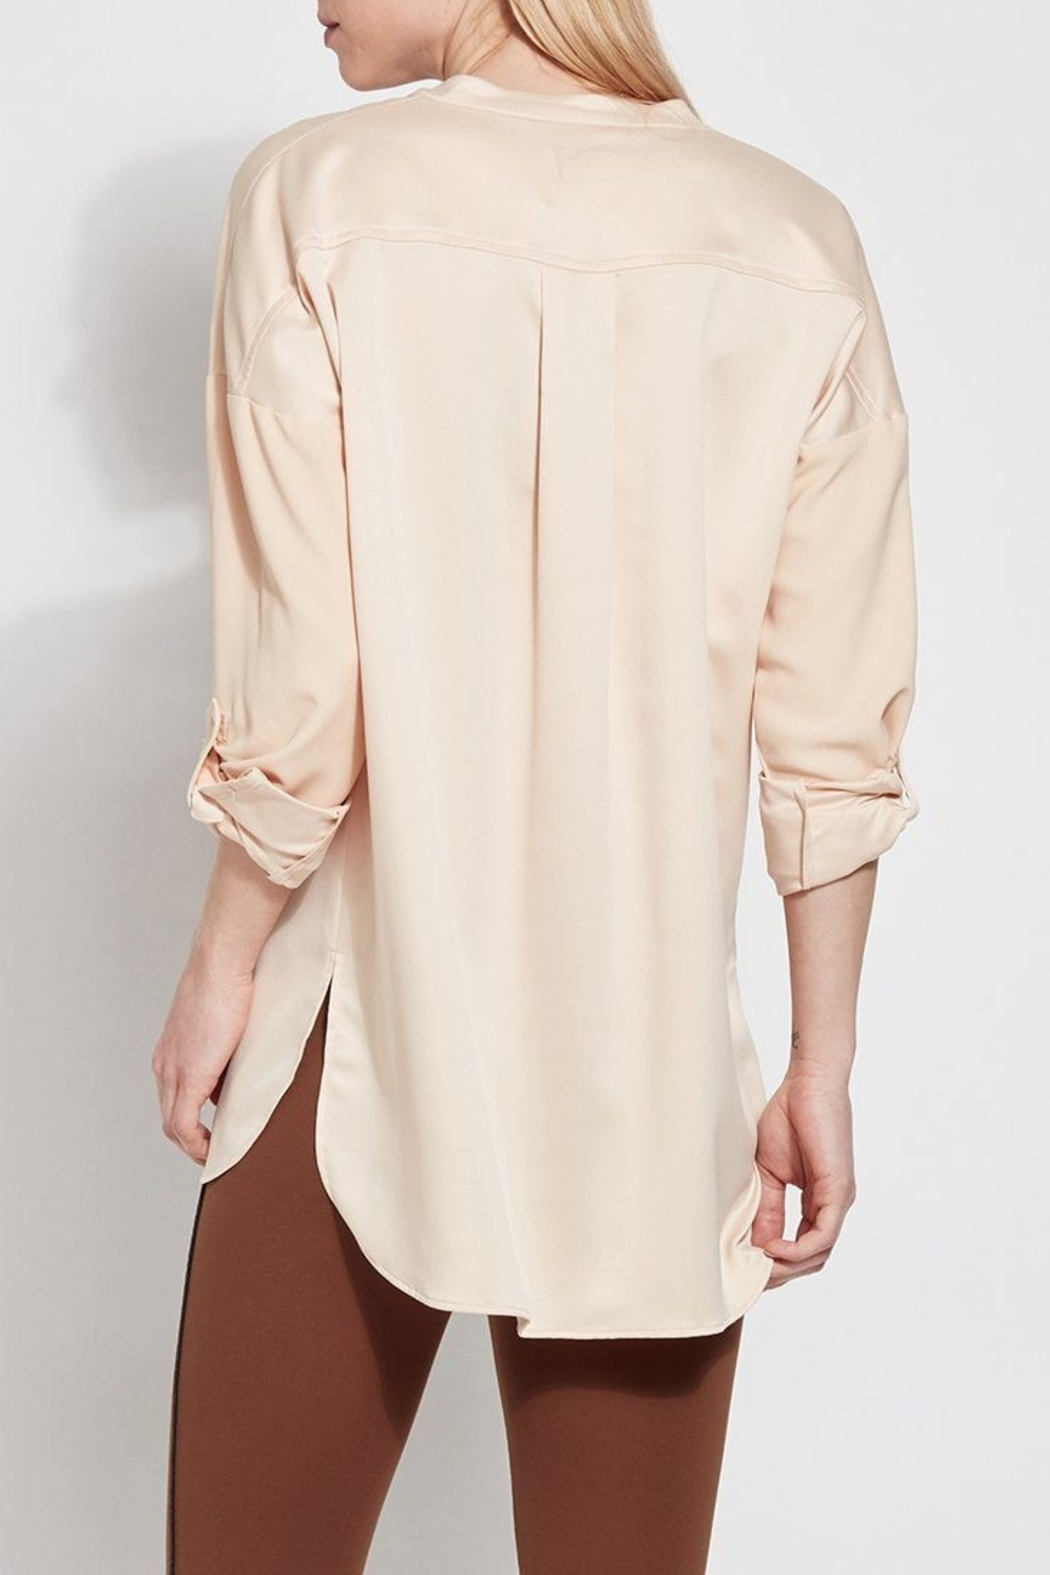 Lyssé Lysse Oversized Satin Blouse - Side Cropped Image